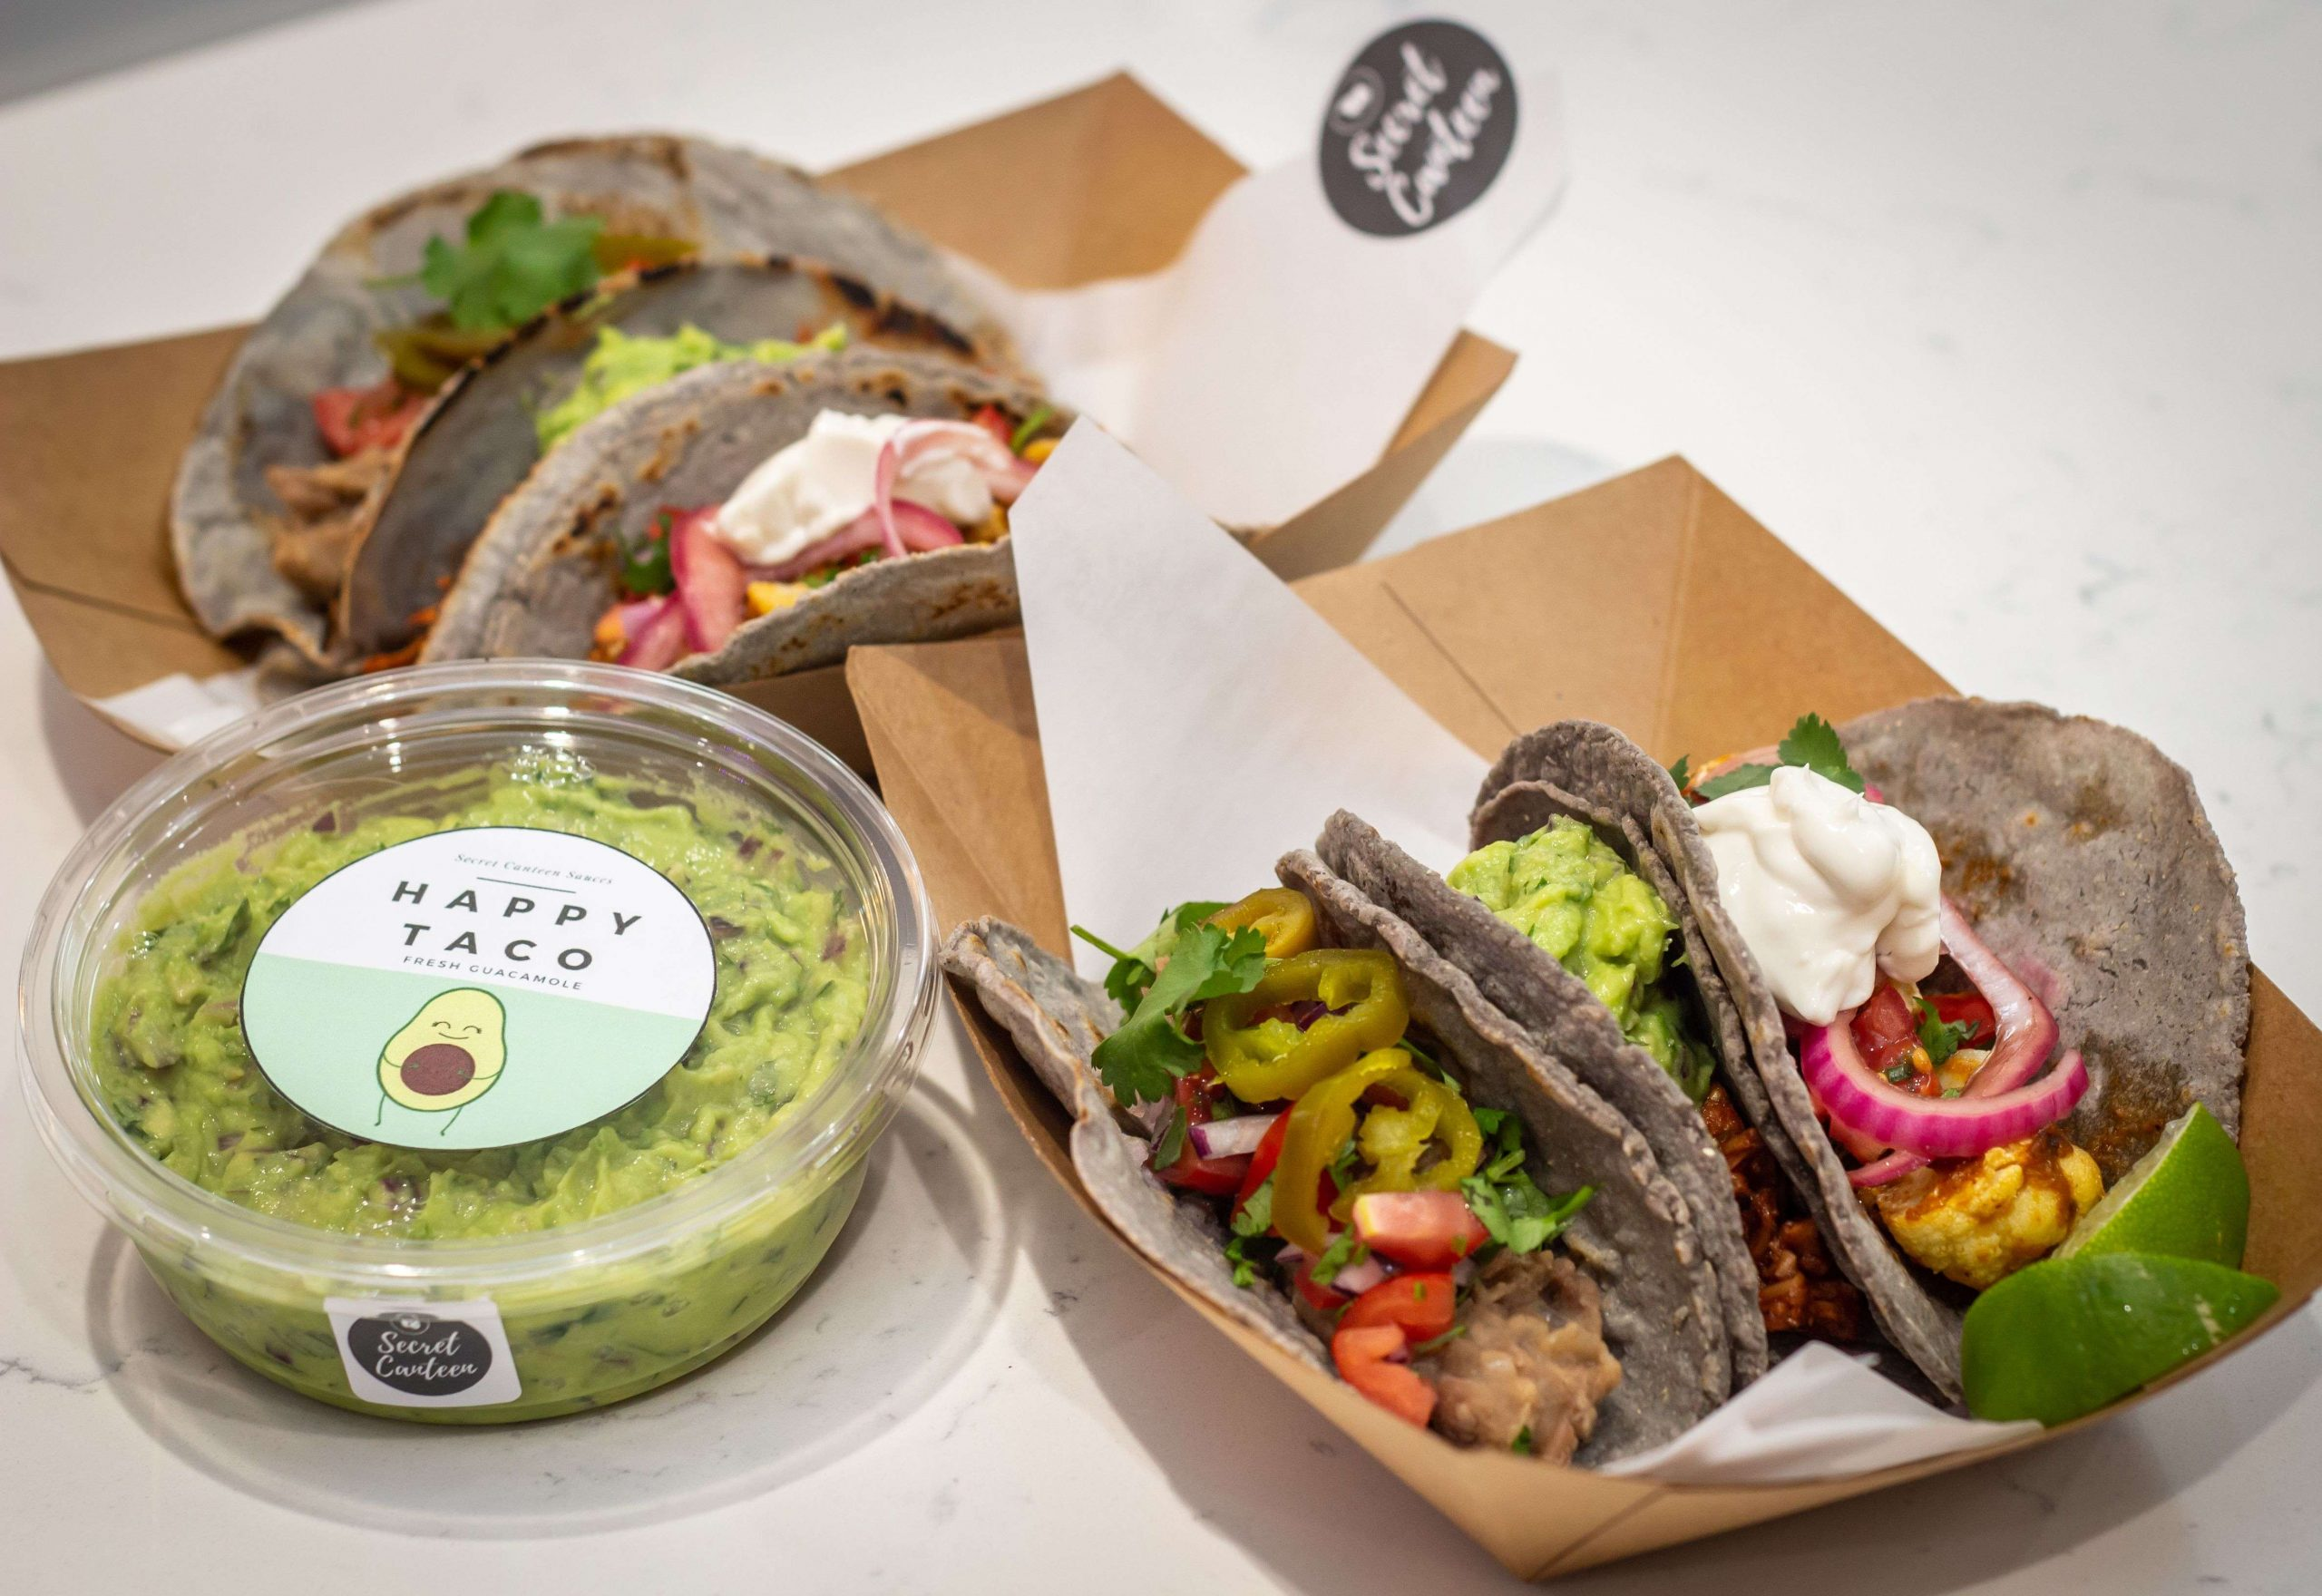 Inclusive vegan food with a Mexican twist – Secret Canteen to launch Happy Taco in October 2020